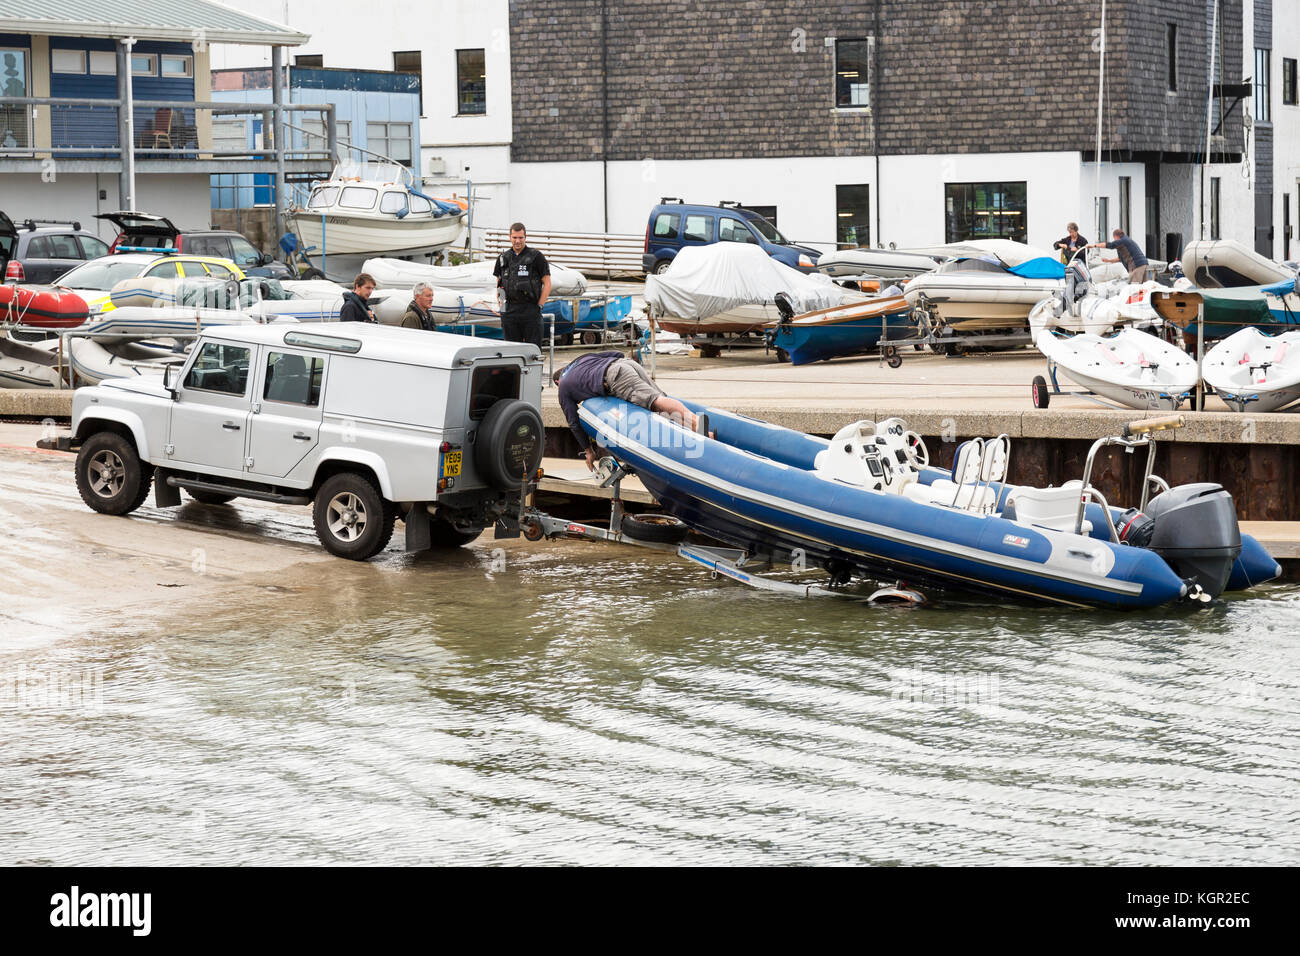 launching rigid inflatable boat off Falmouth harbour slipway, man hangs over bow to release winch while onlookers - Stock Image